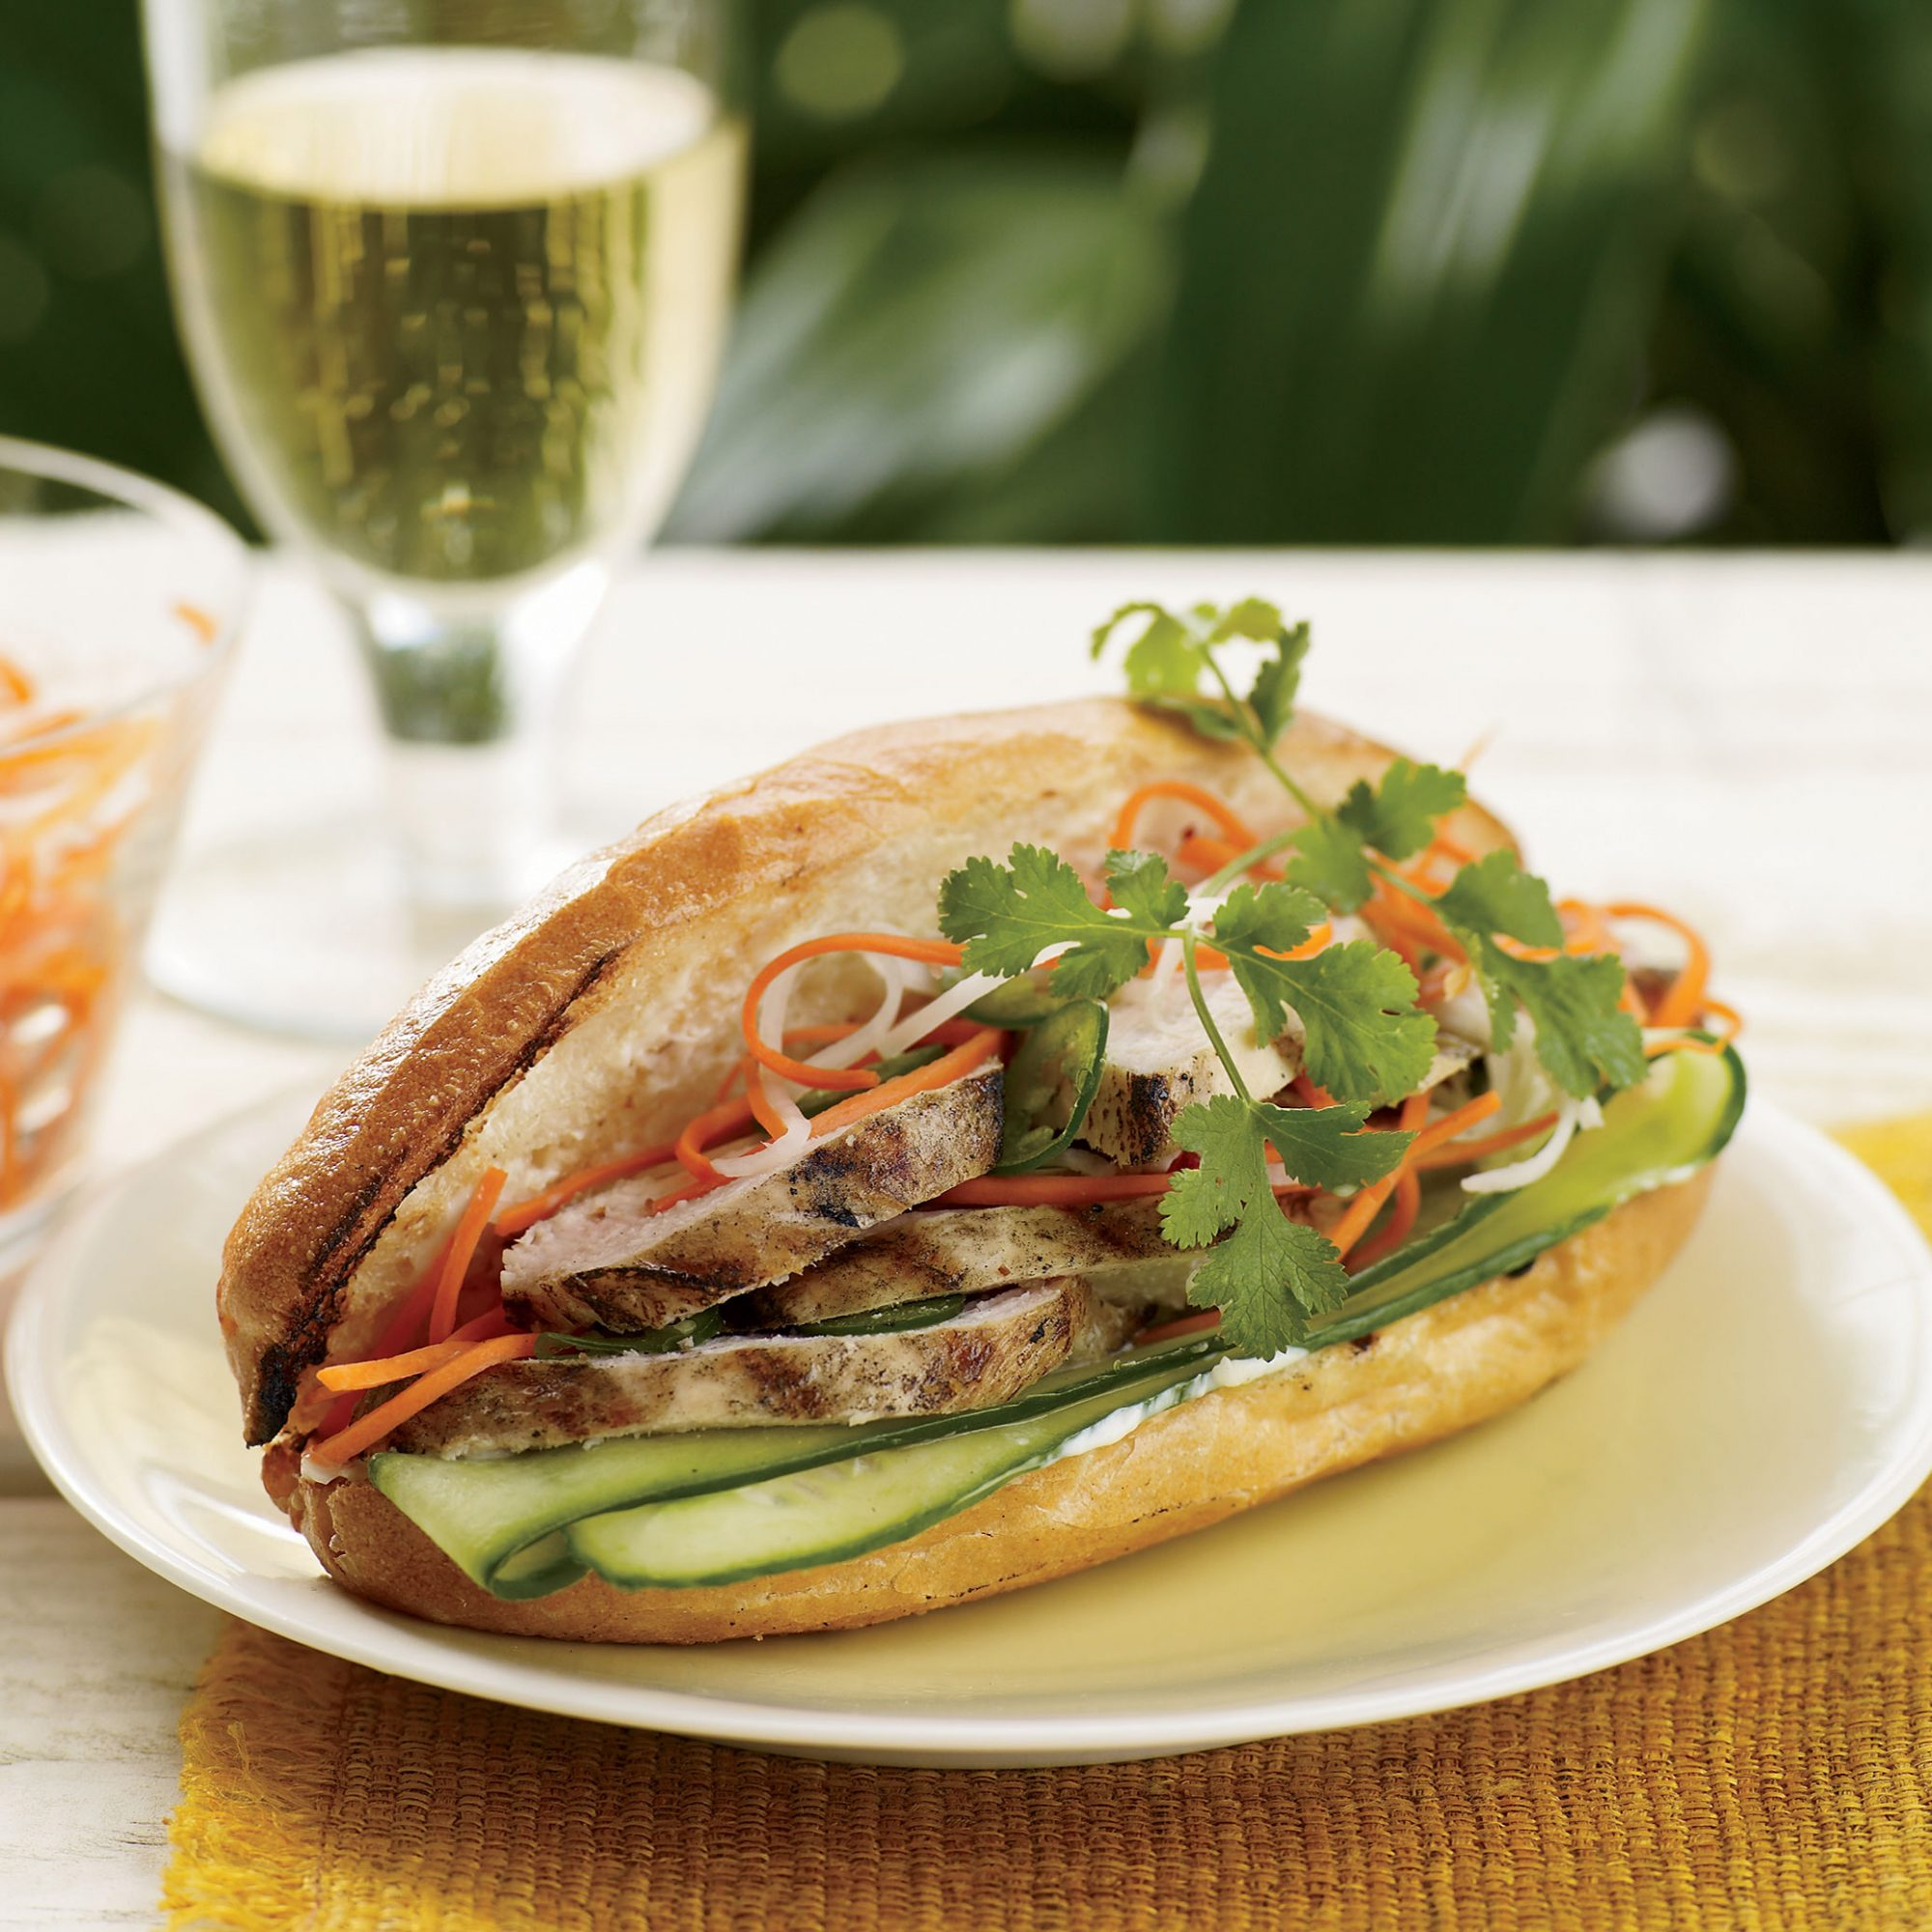 Grilled-Chicken Banh Mi Recipe - Nick Fauchald | Food & Wine